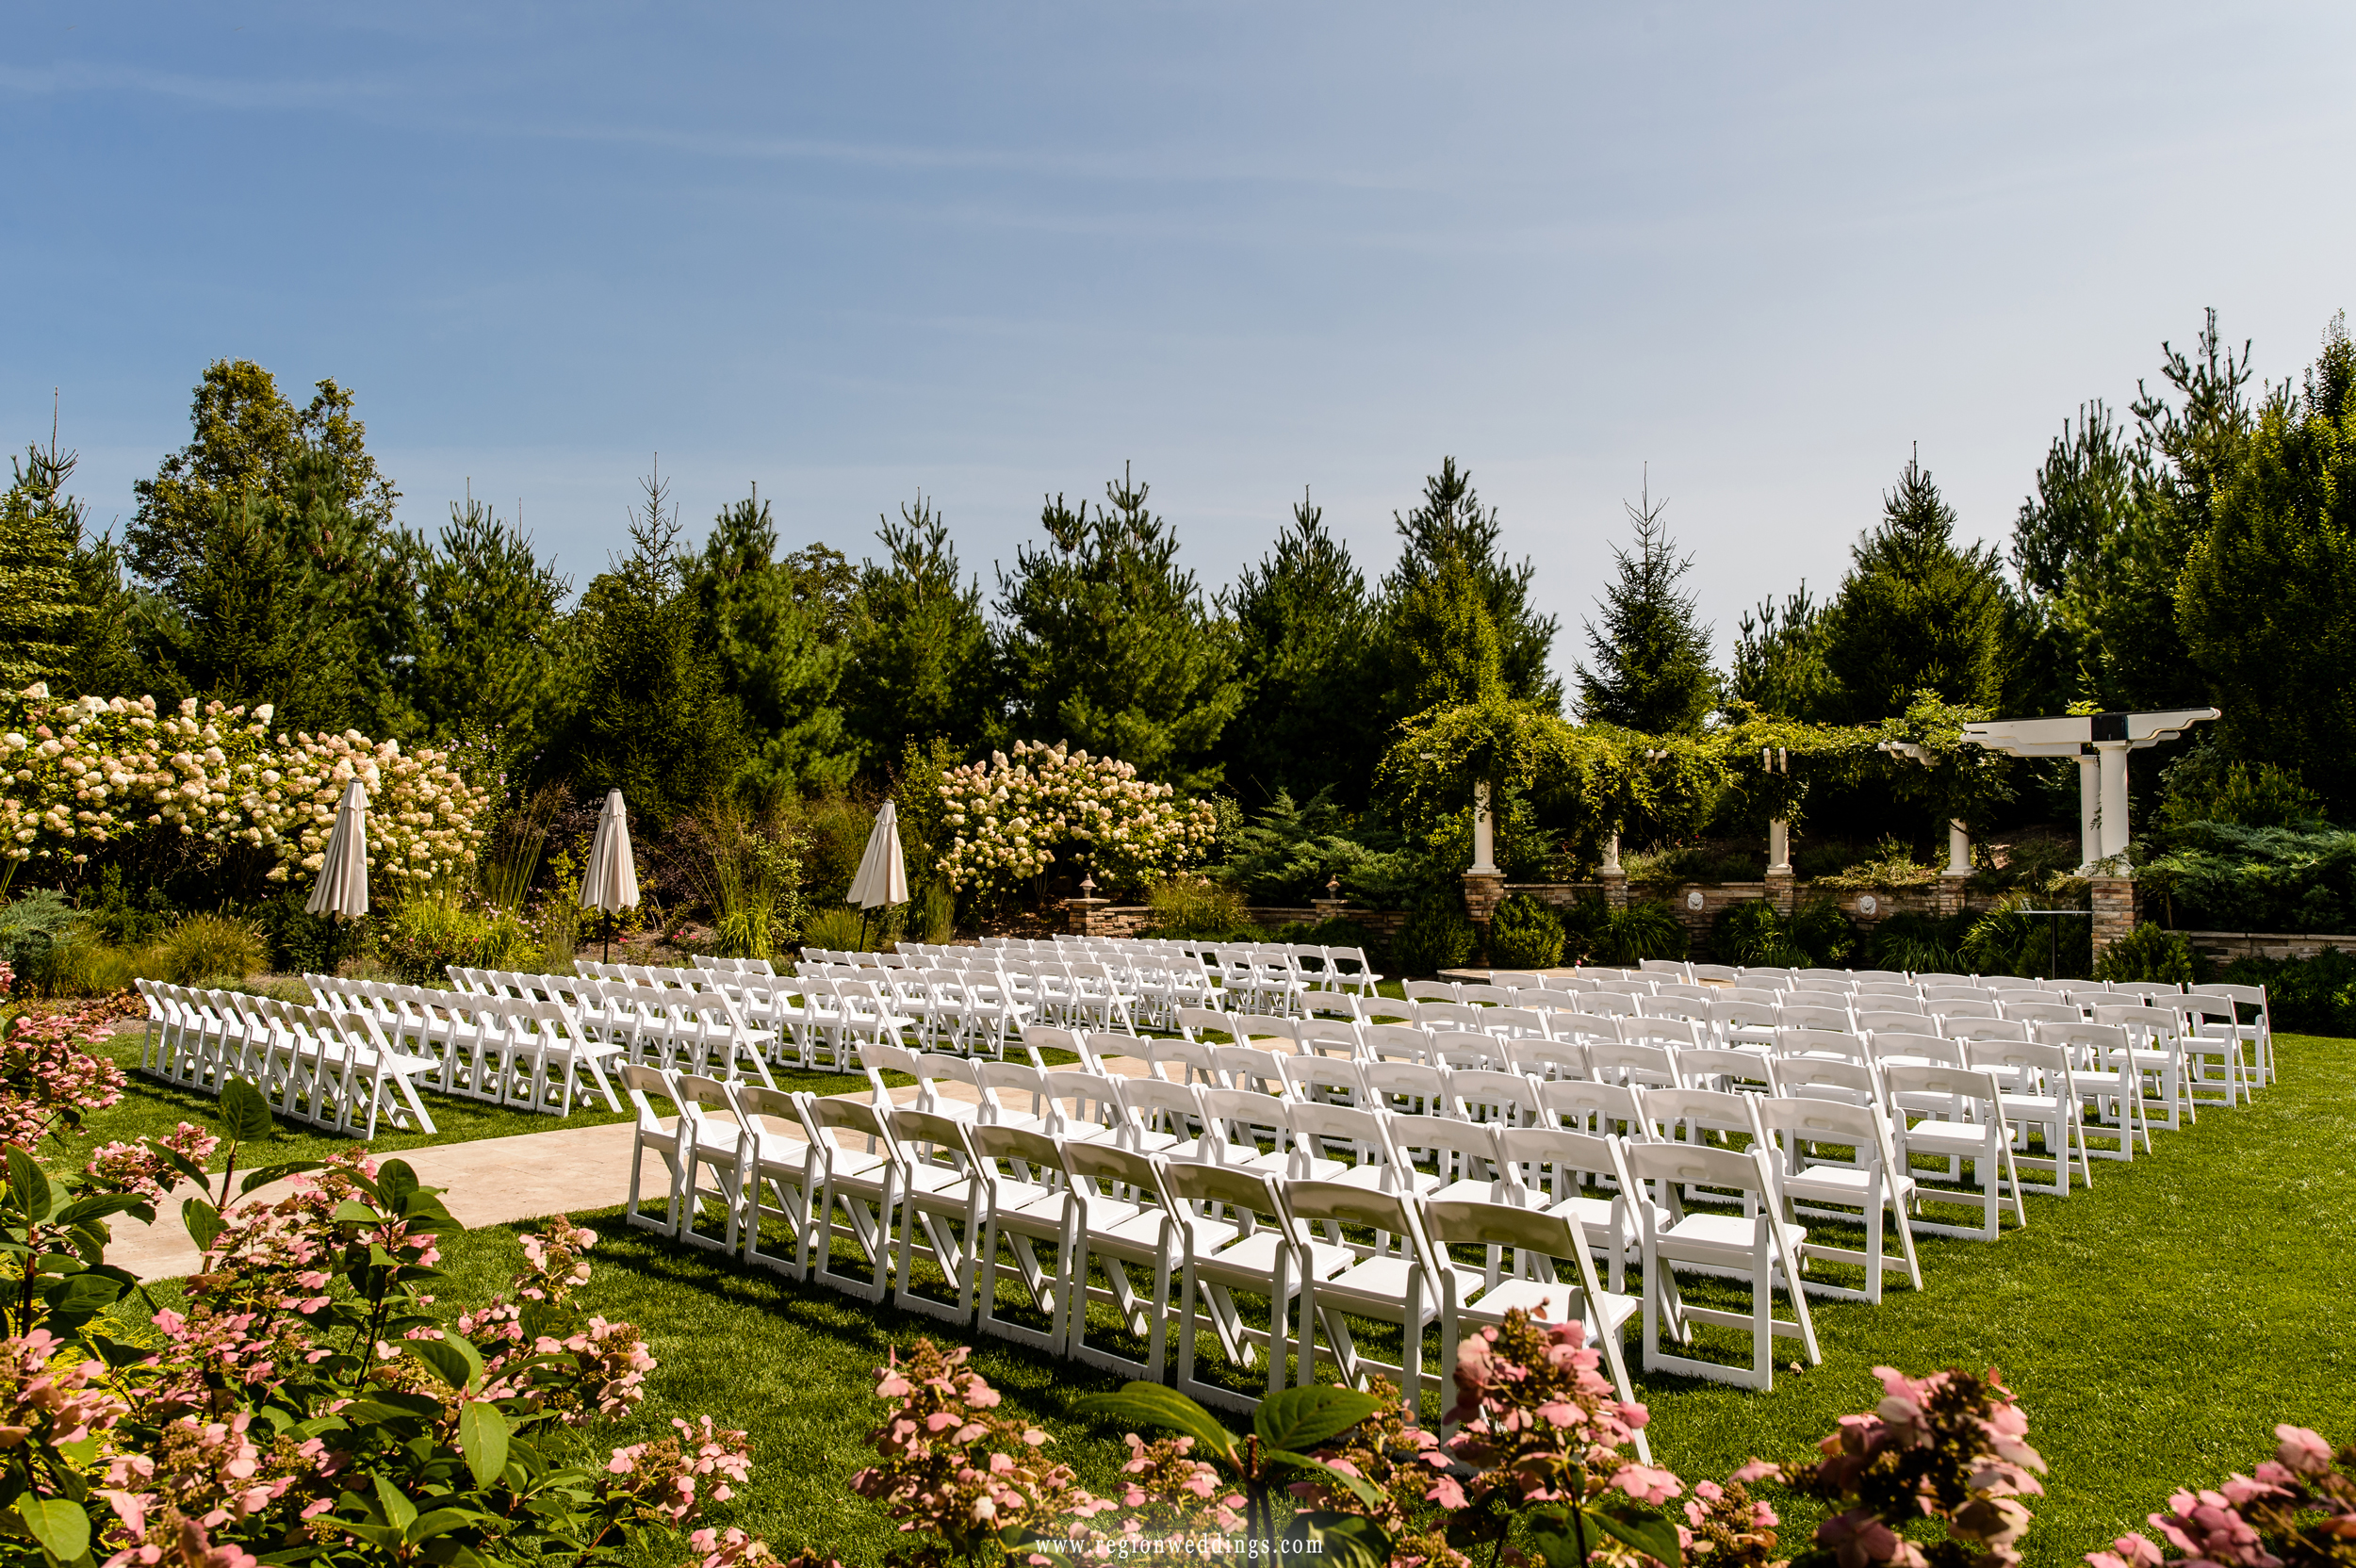 The outdoor wedding ceremony area at The Pavilion At Sandy Pines.